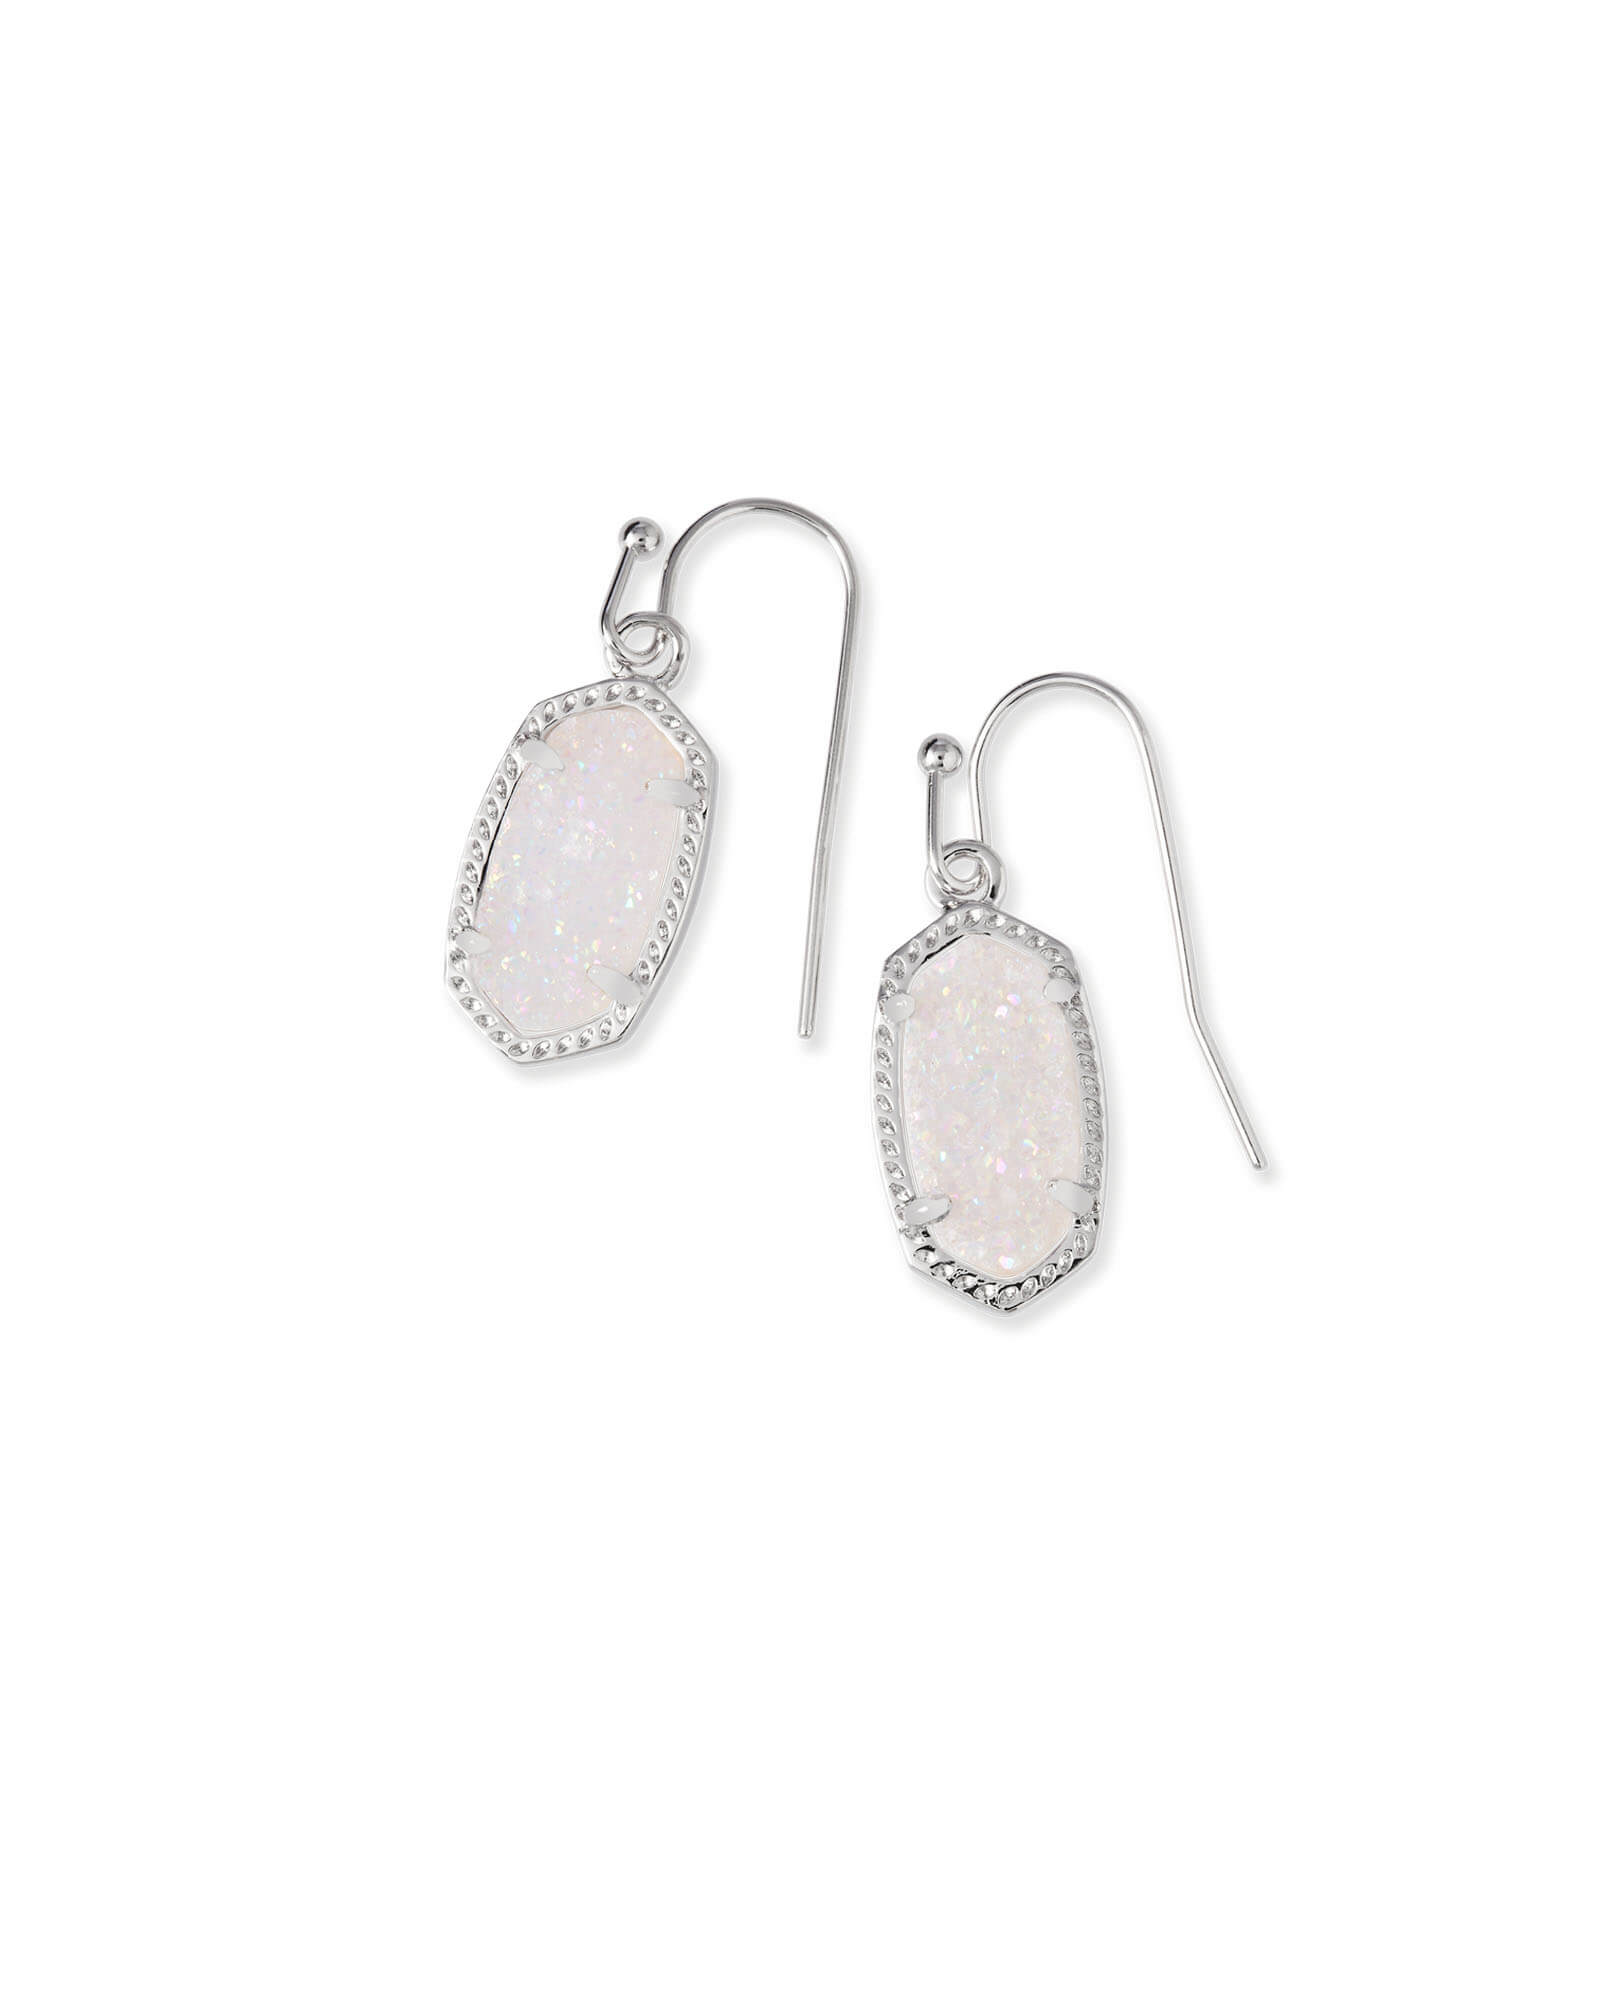 a85ddb6c7 Lee Silver Drop Earrings in Iridescent Drusy | Kendra Scott